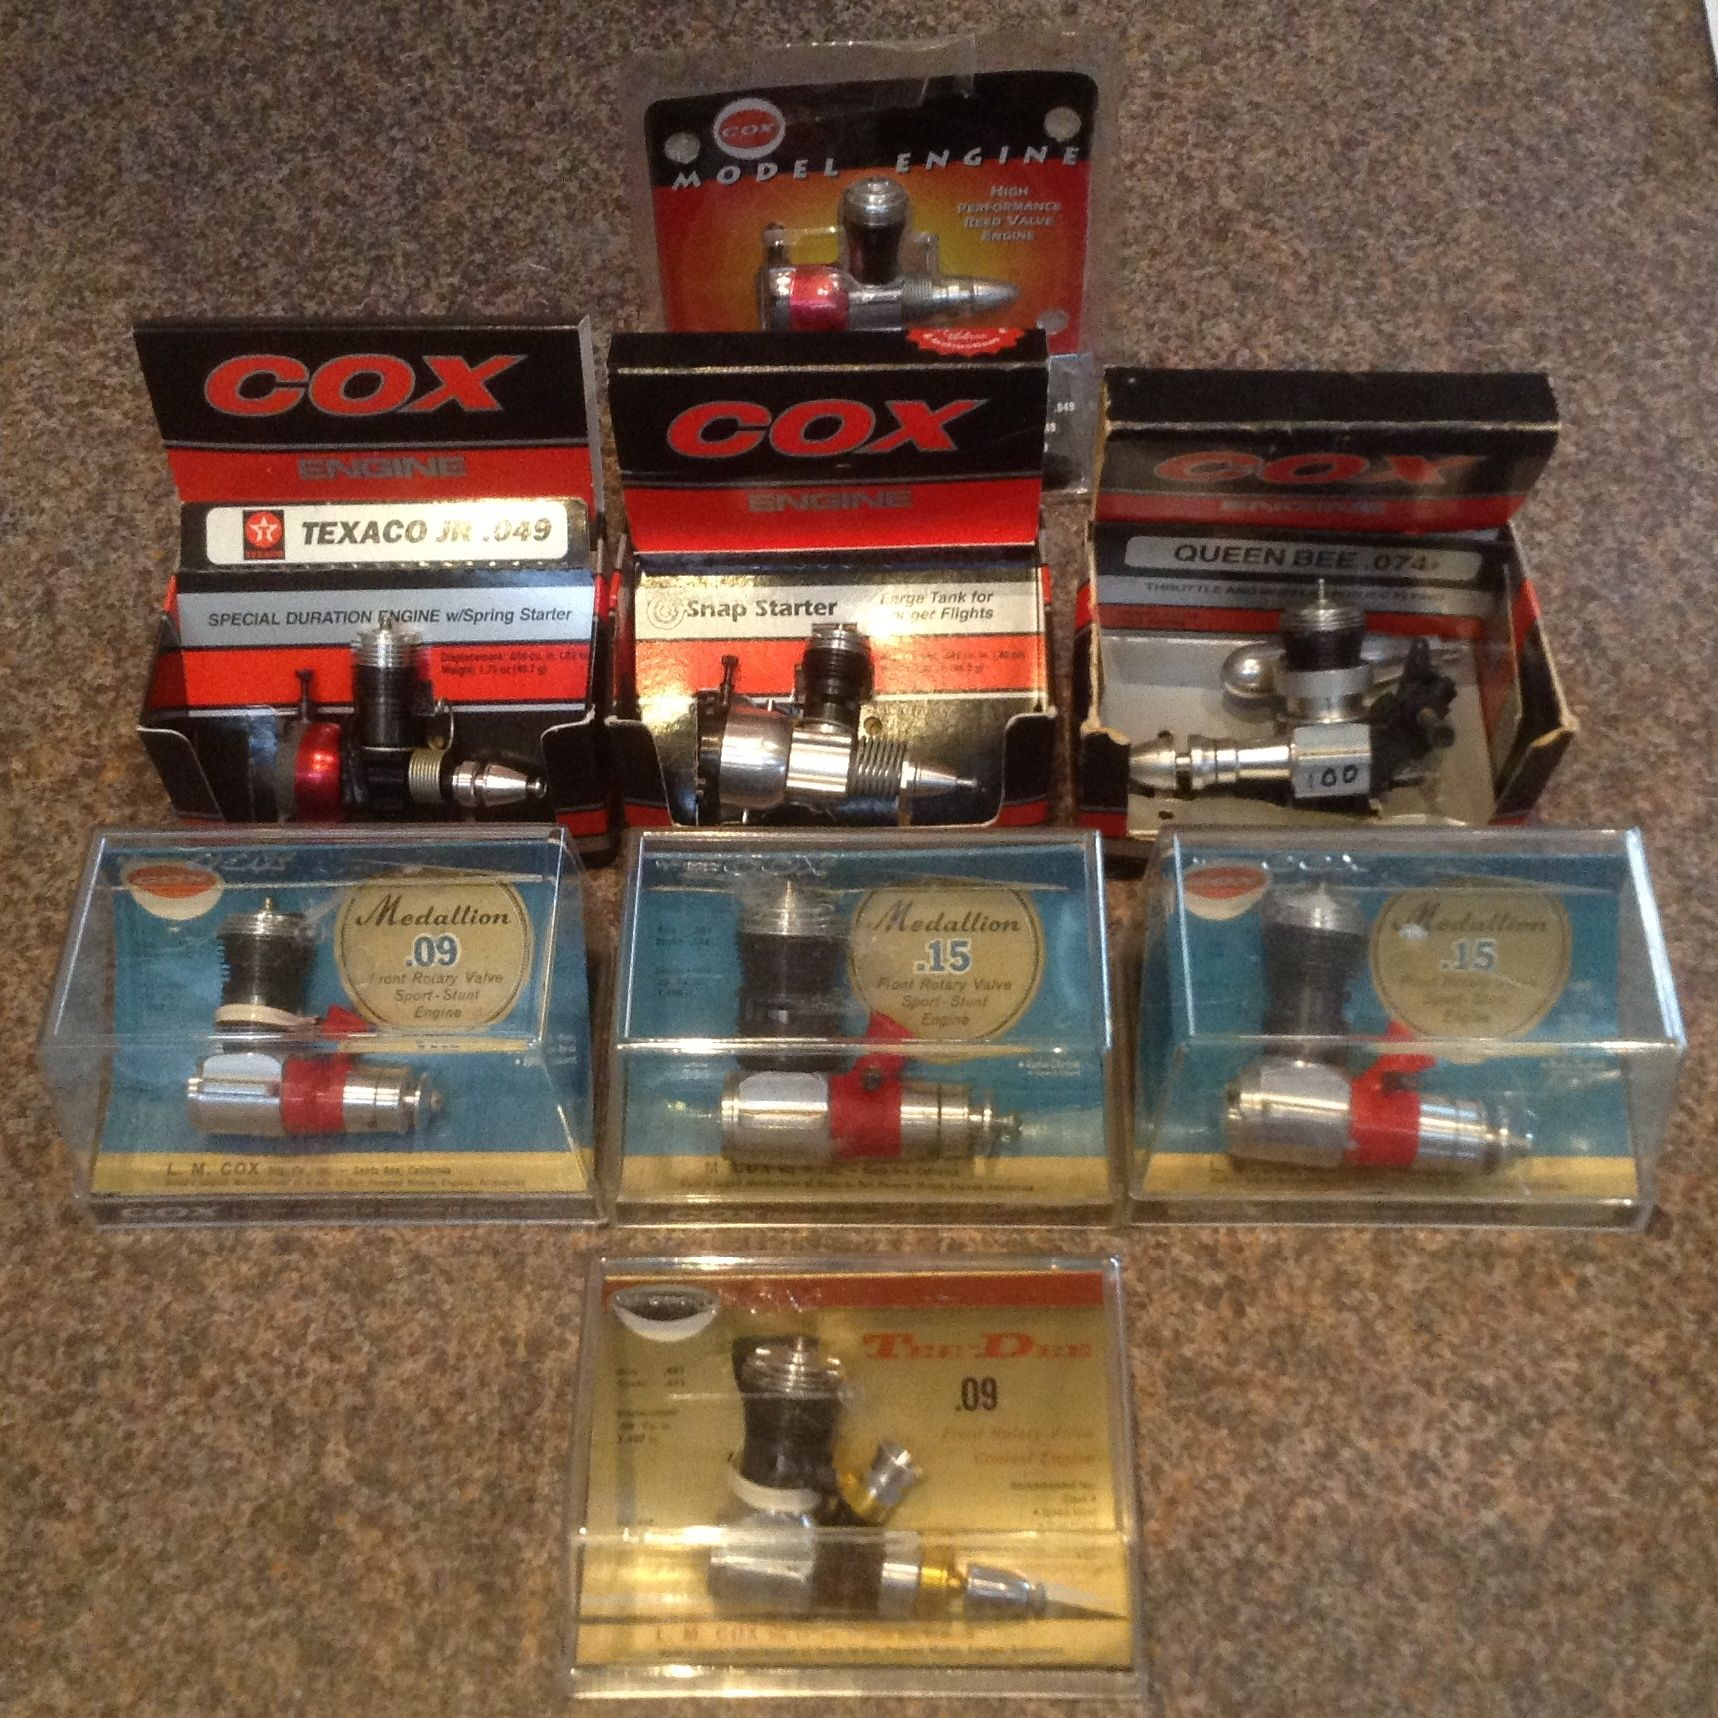 Some NIB Cox's Tether car, Model airplanes, Miniature model